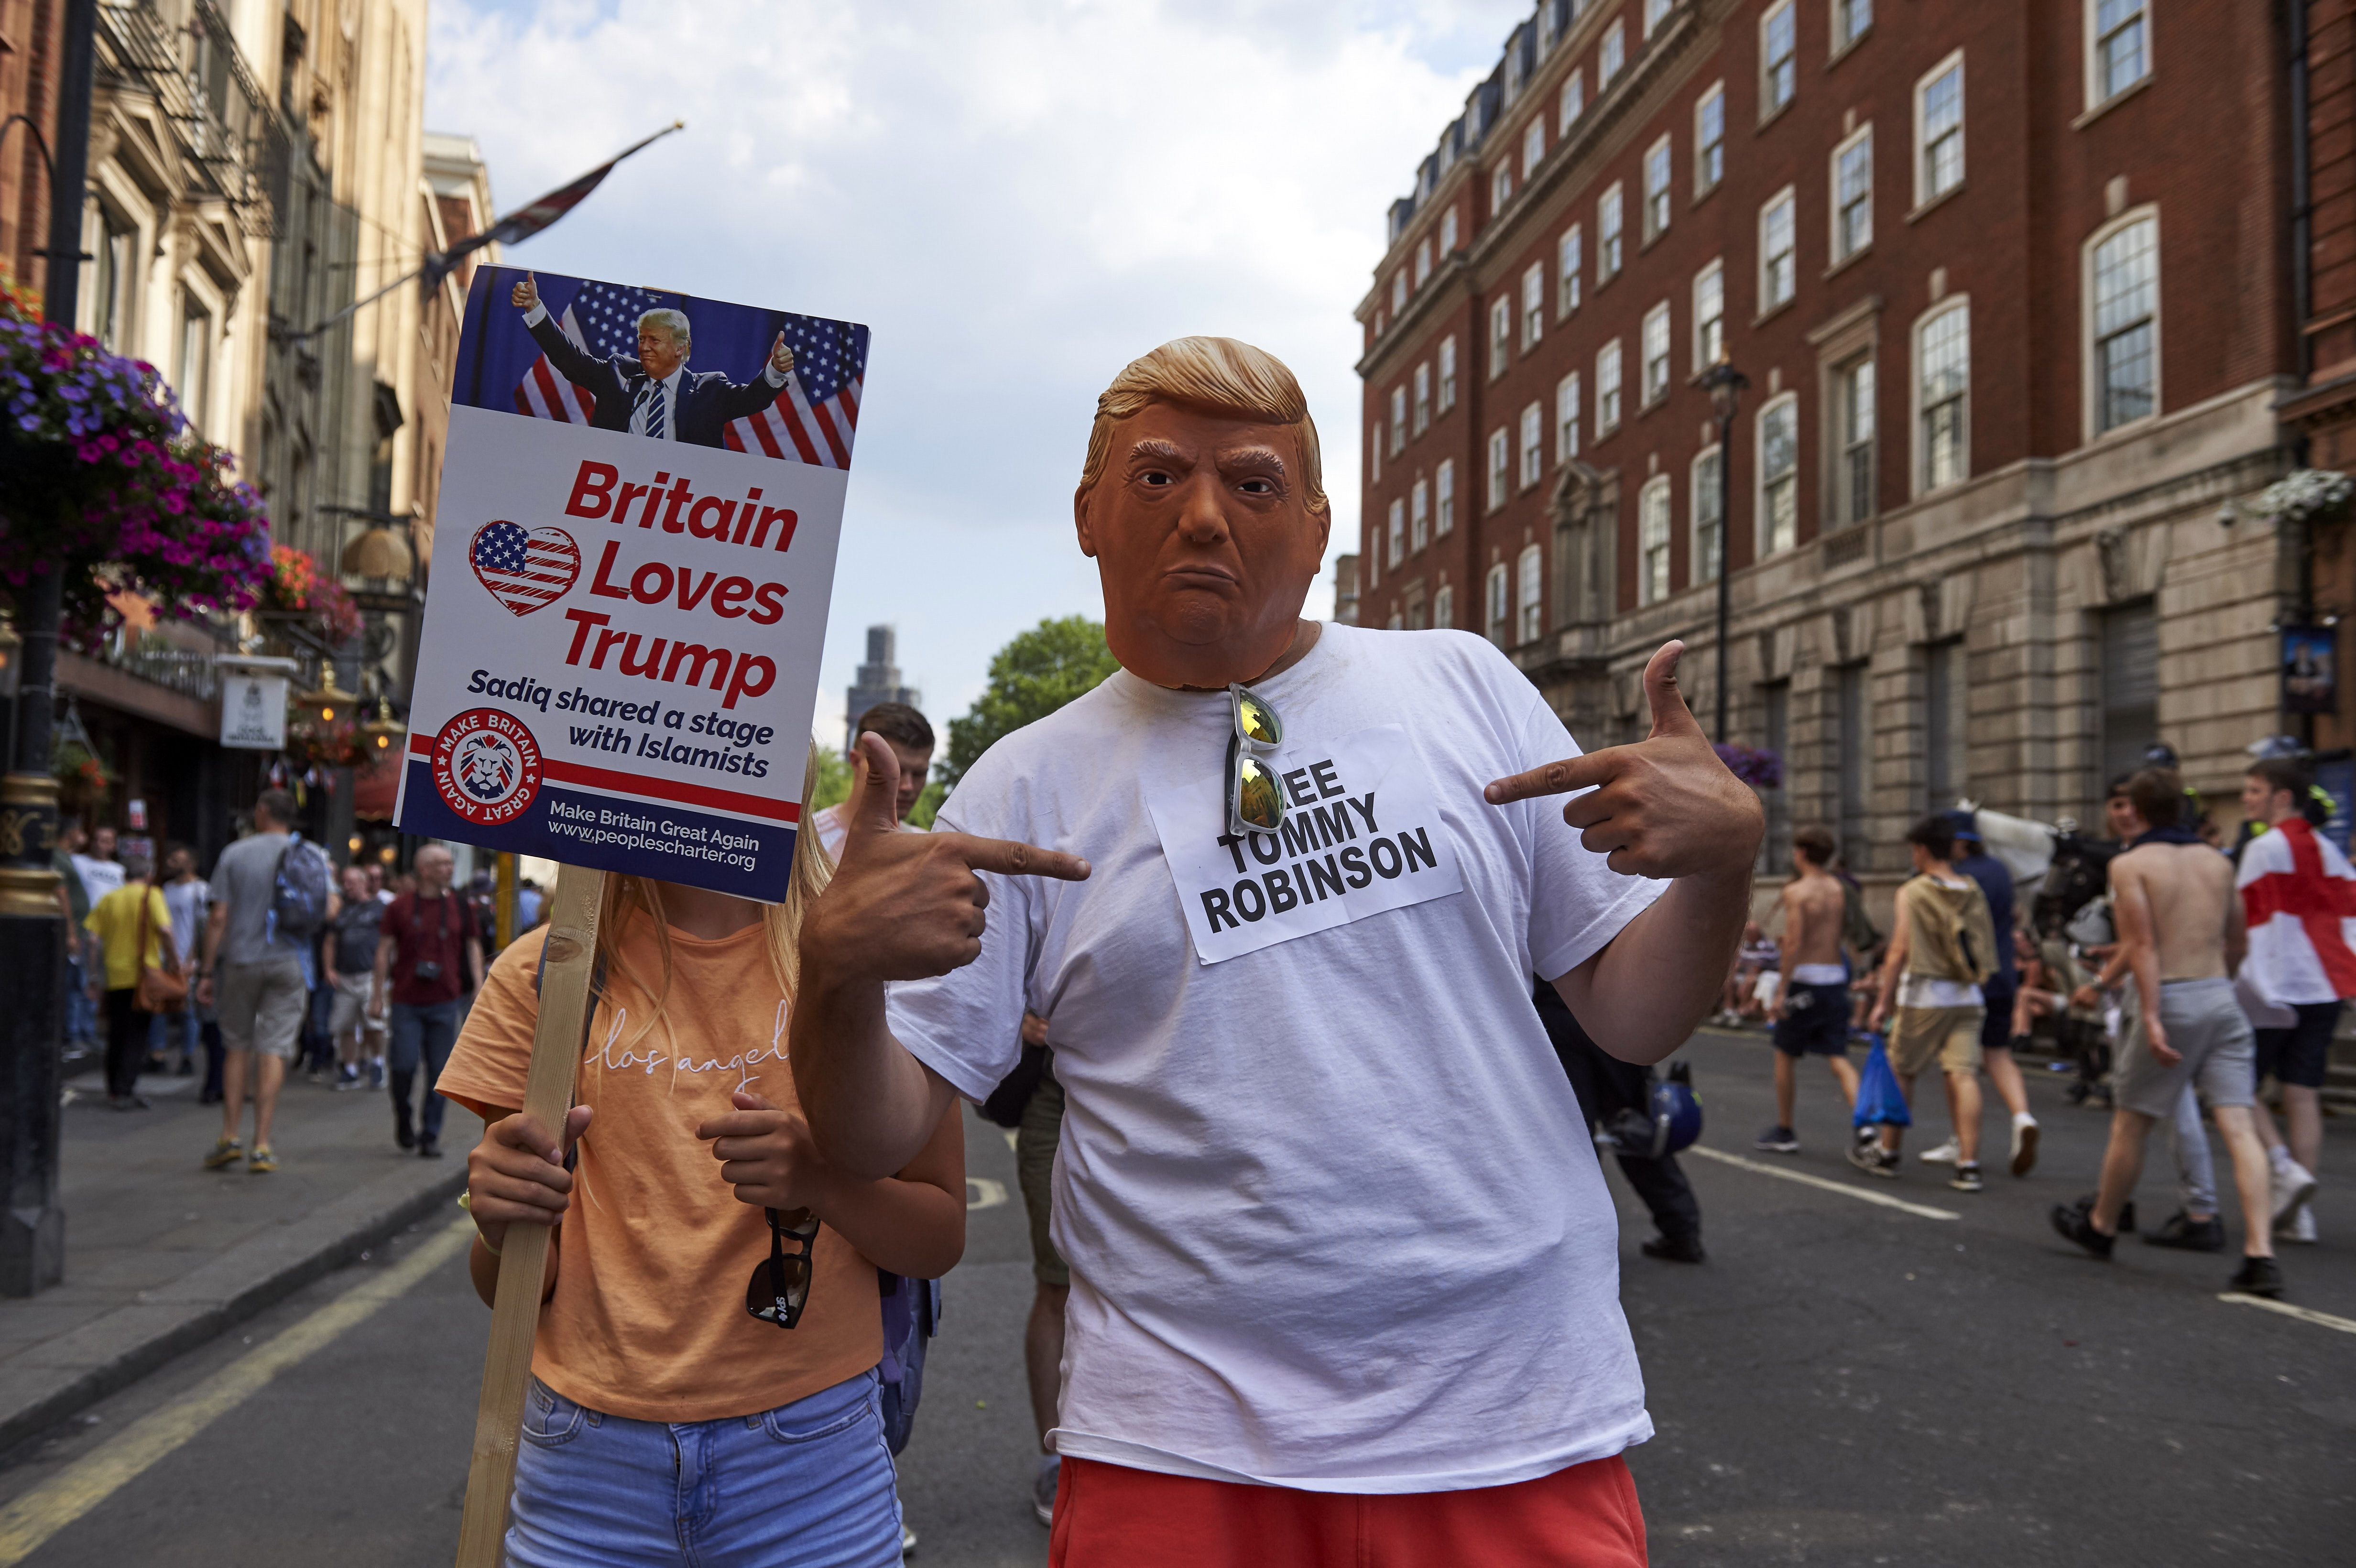 US President Donald Trump supporters pose for the camera as they mix with protesters at a rally by supporters of far-right spokesman Tommy Robinson in Trafalgar Square in central London on July 14, 2018, following the jailing of Tommy Robinson for contempt of court. (Photo by Niklas HALLE'N / AFP) (Photo credit should read NIKLAS HALLE'N/AFP/Getty Images)